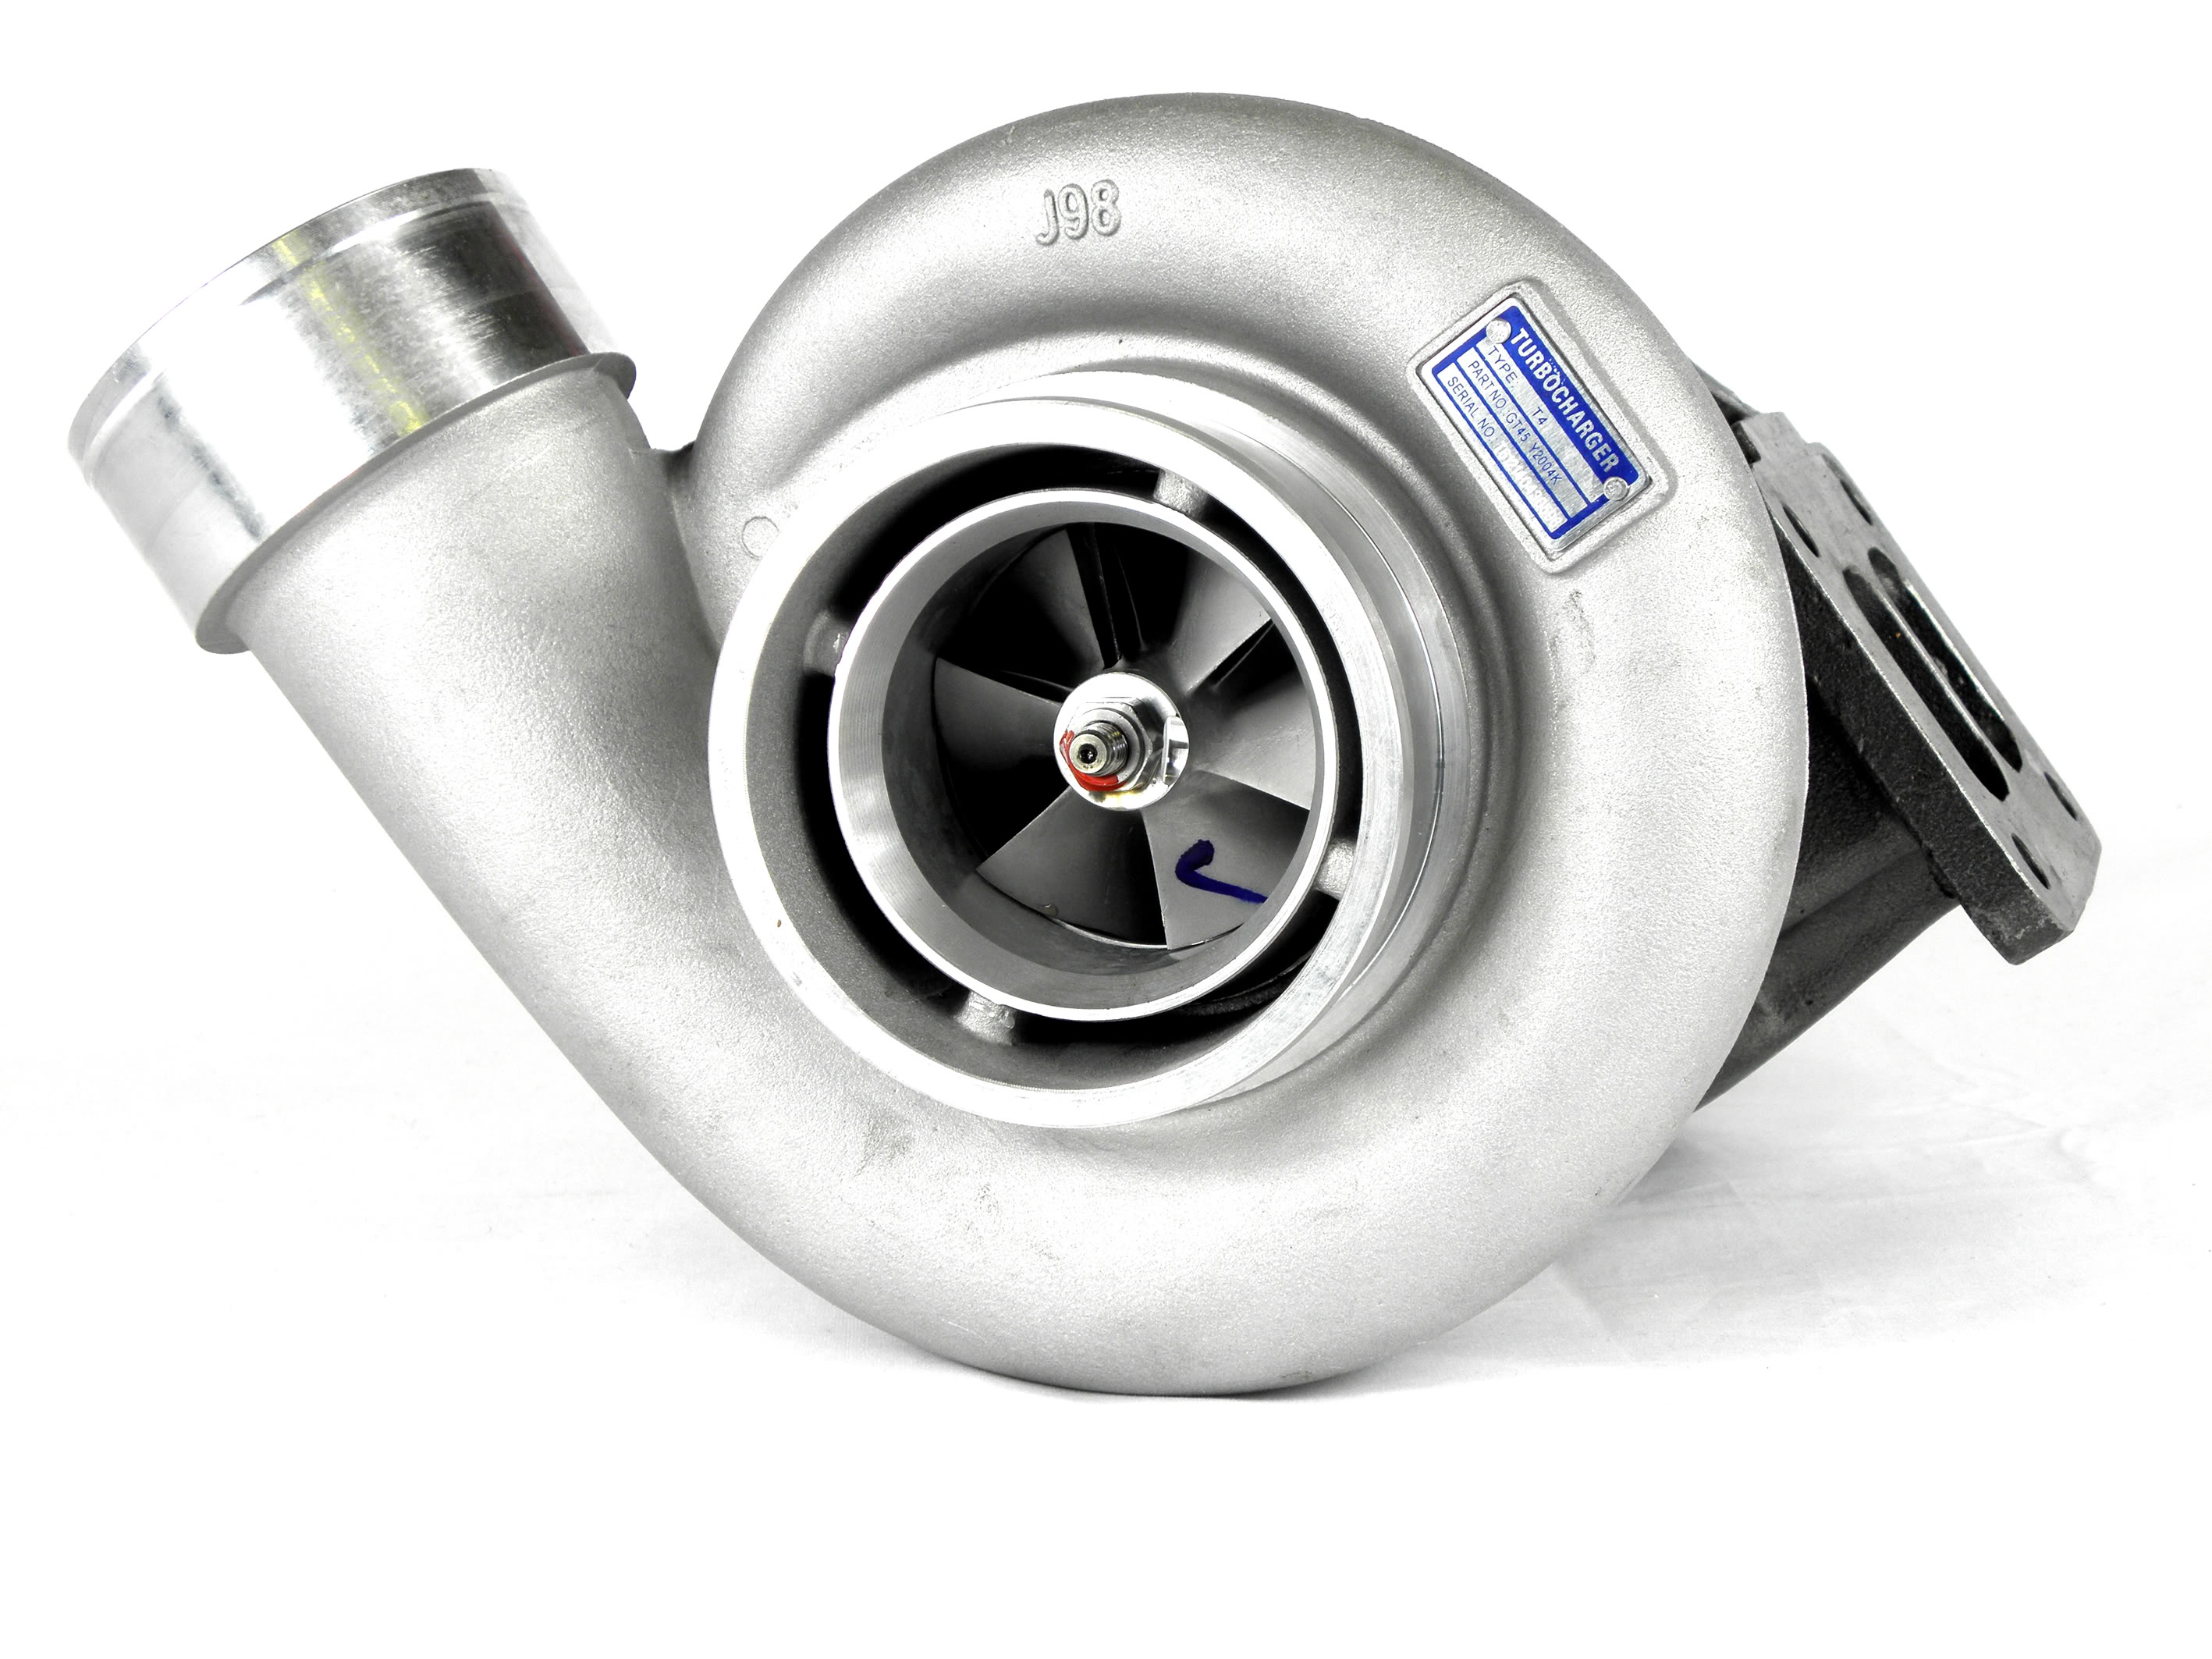 How does a Turbo Work?